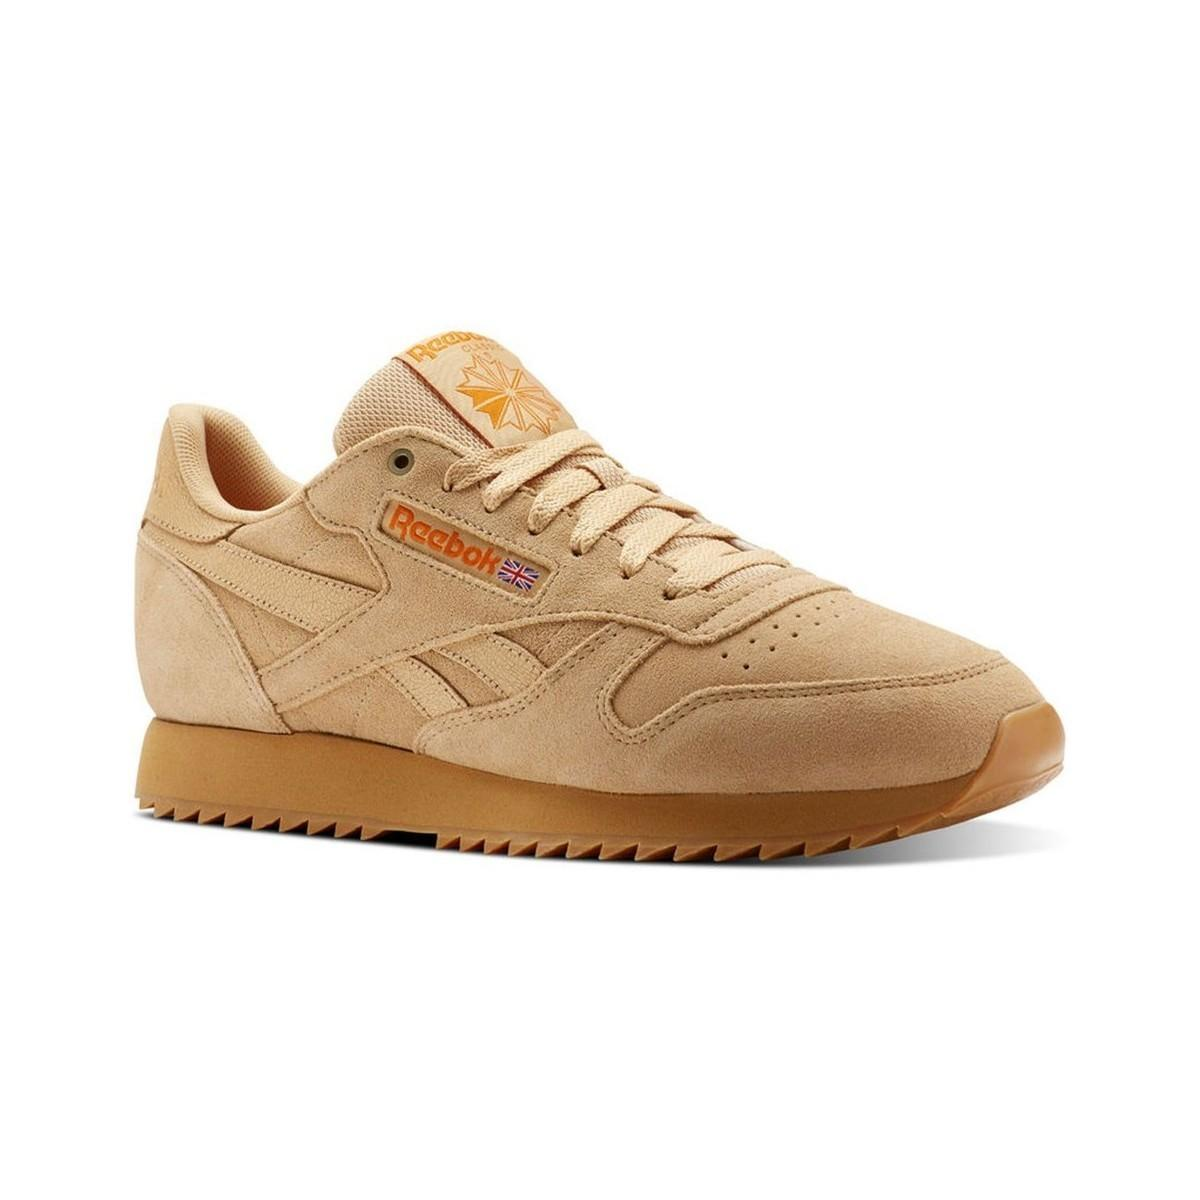 cea174ca4a3 Reebok - Natural Classic Leather Montana Cans Women s Shoes (trainers) In  Beige - Lyst. View fullscreen